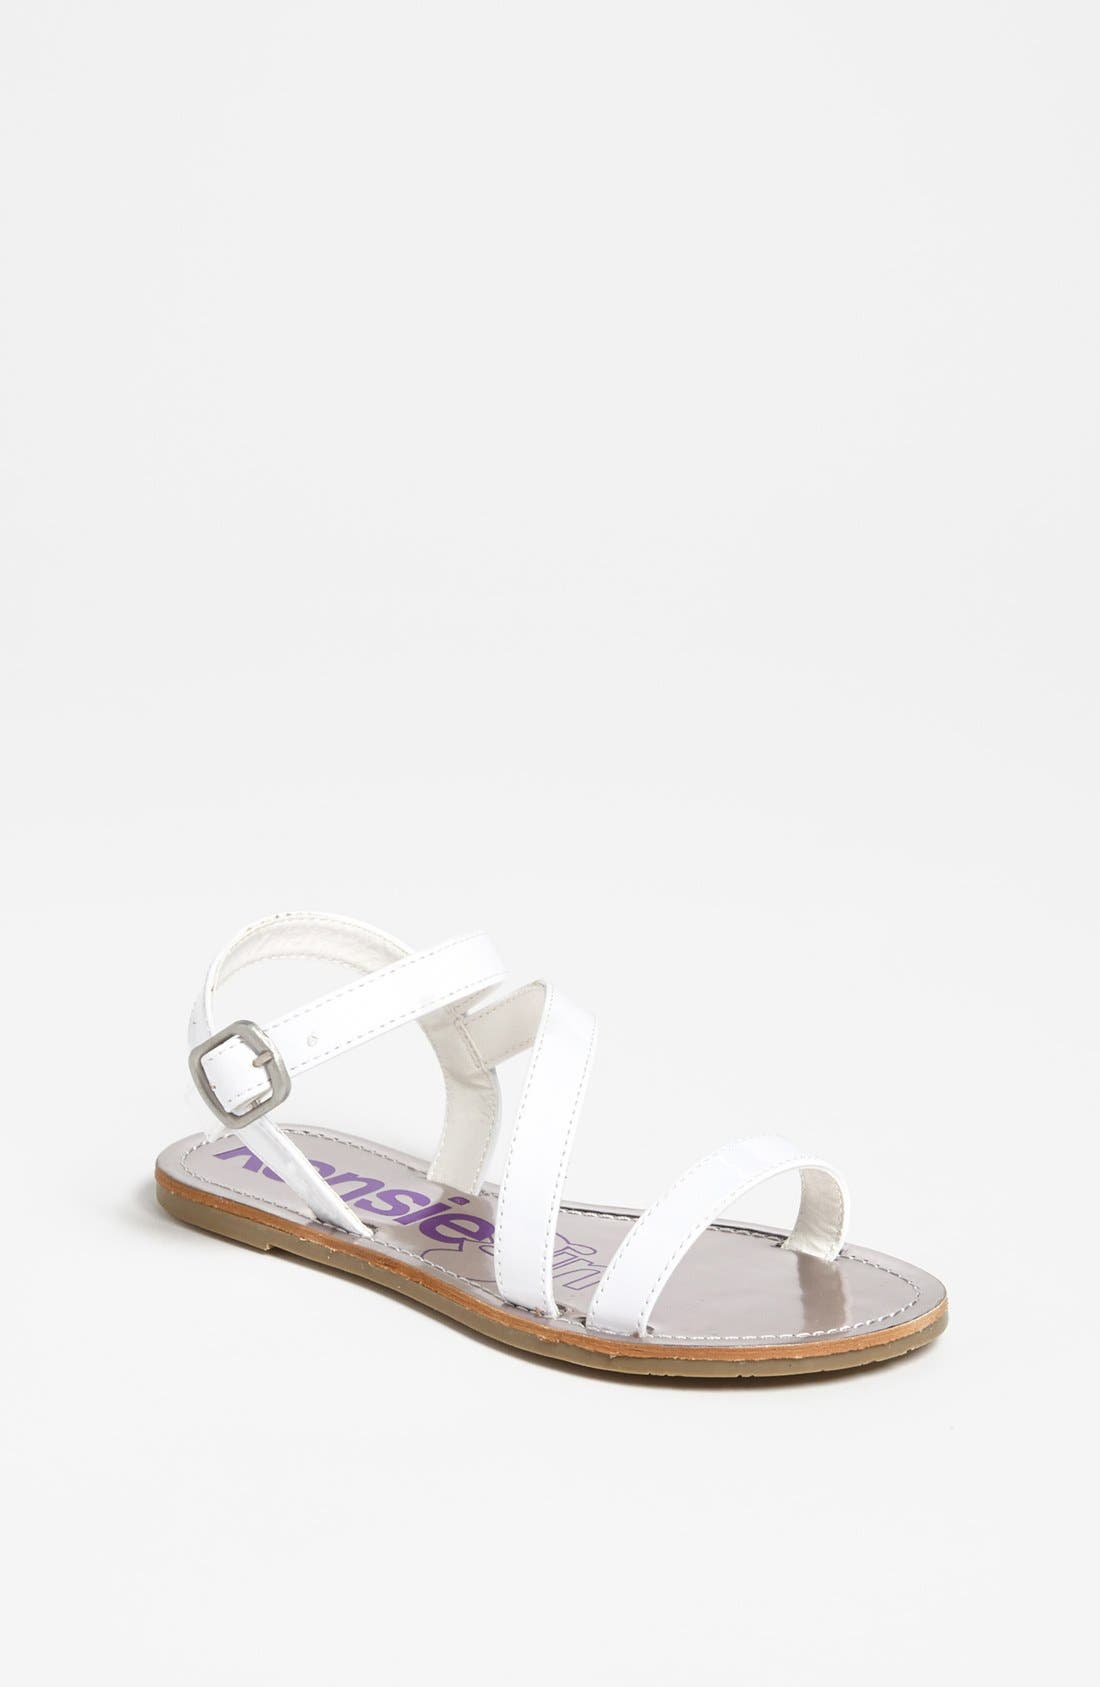 Alternate Image 1 Selected - kensie girl Strappy Sandal (Toddler, Little Kid & Big Kid)